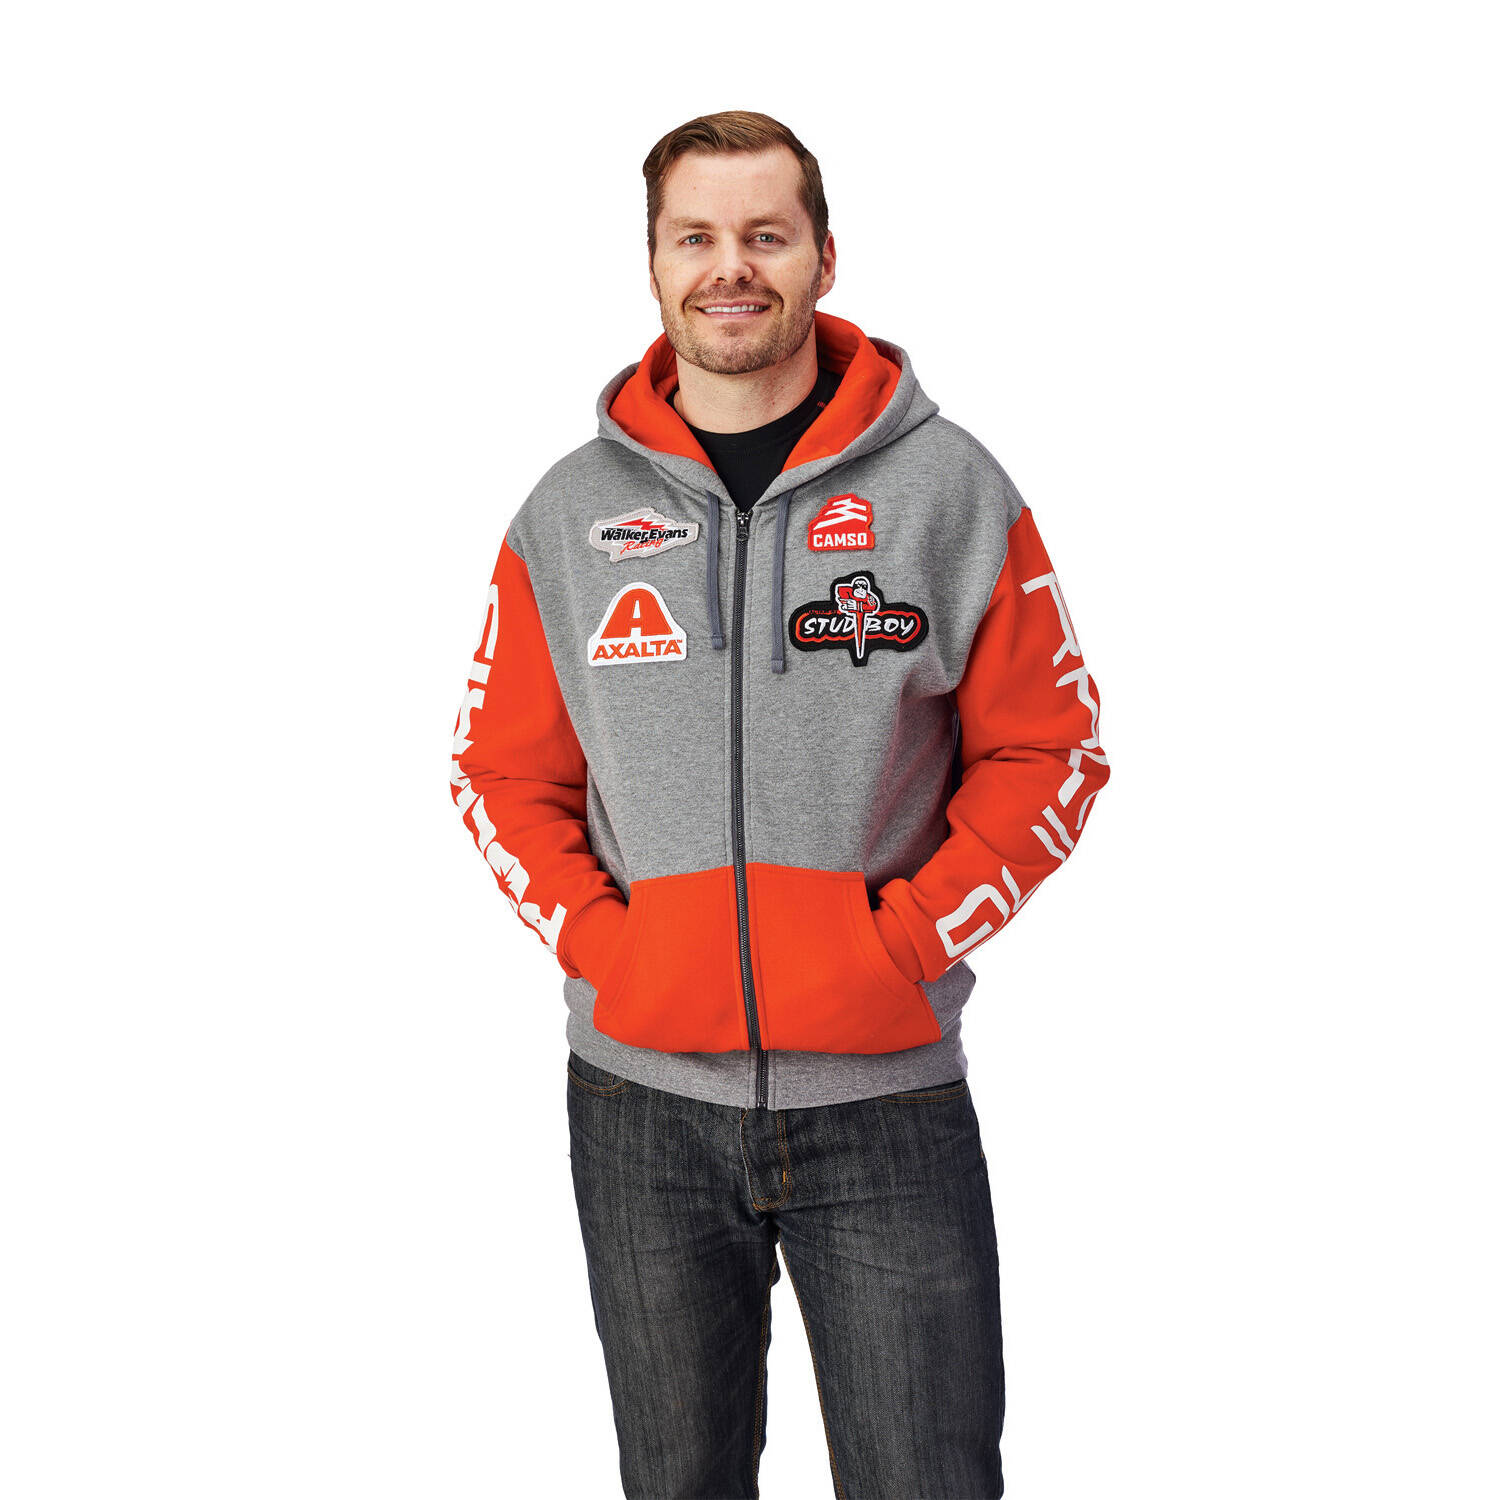 Men's Full-Zip Racing Hoodie Sweatshirt with Polaris® Logo, Gray